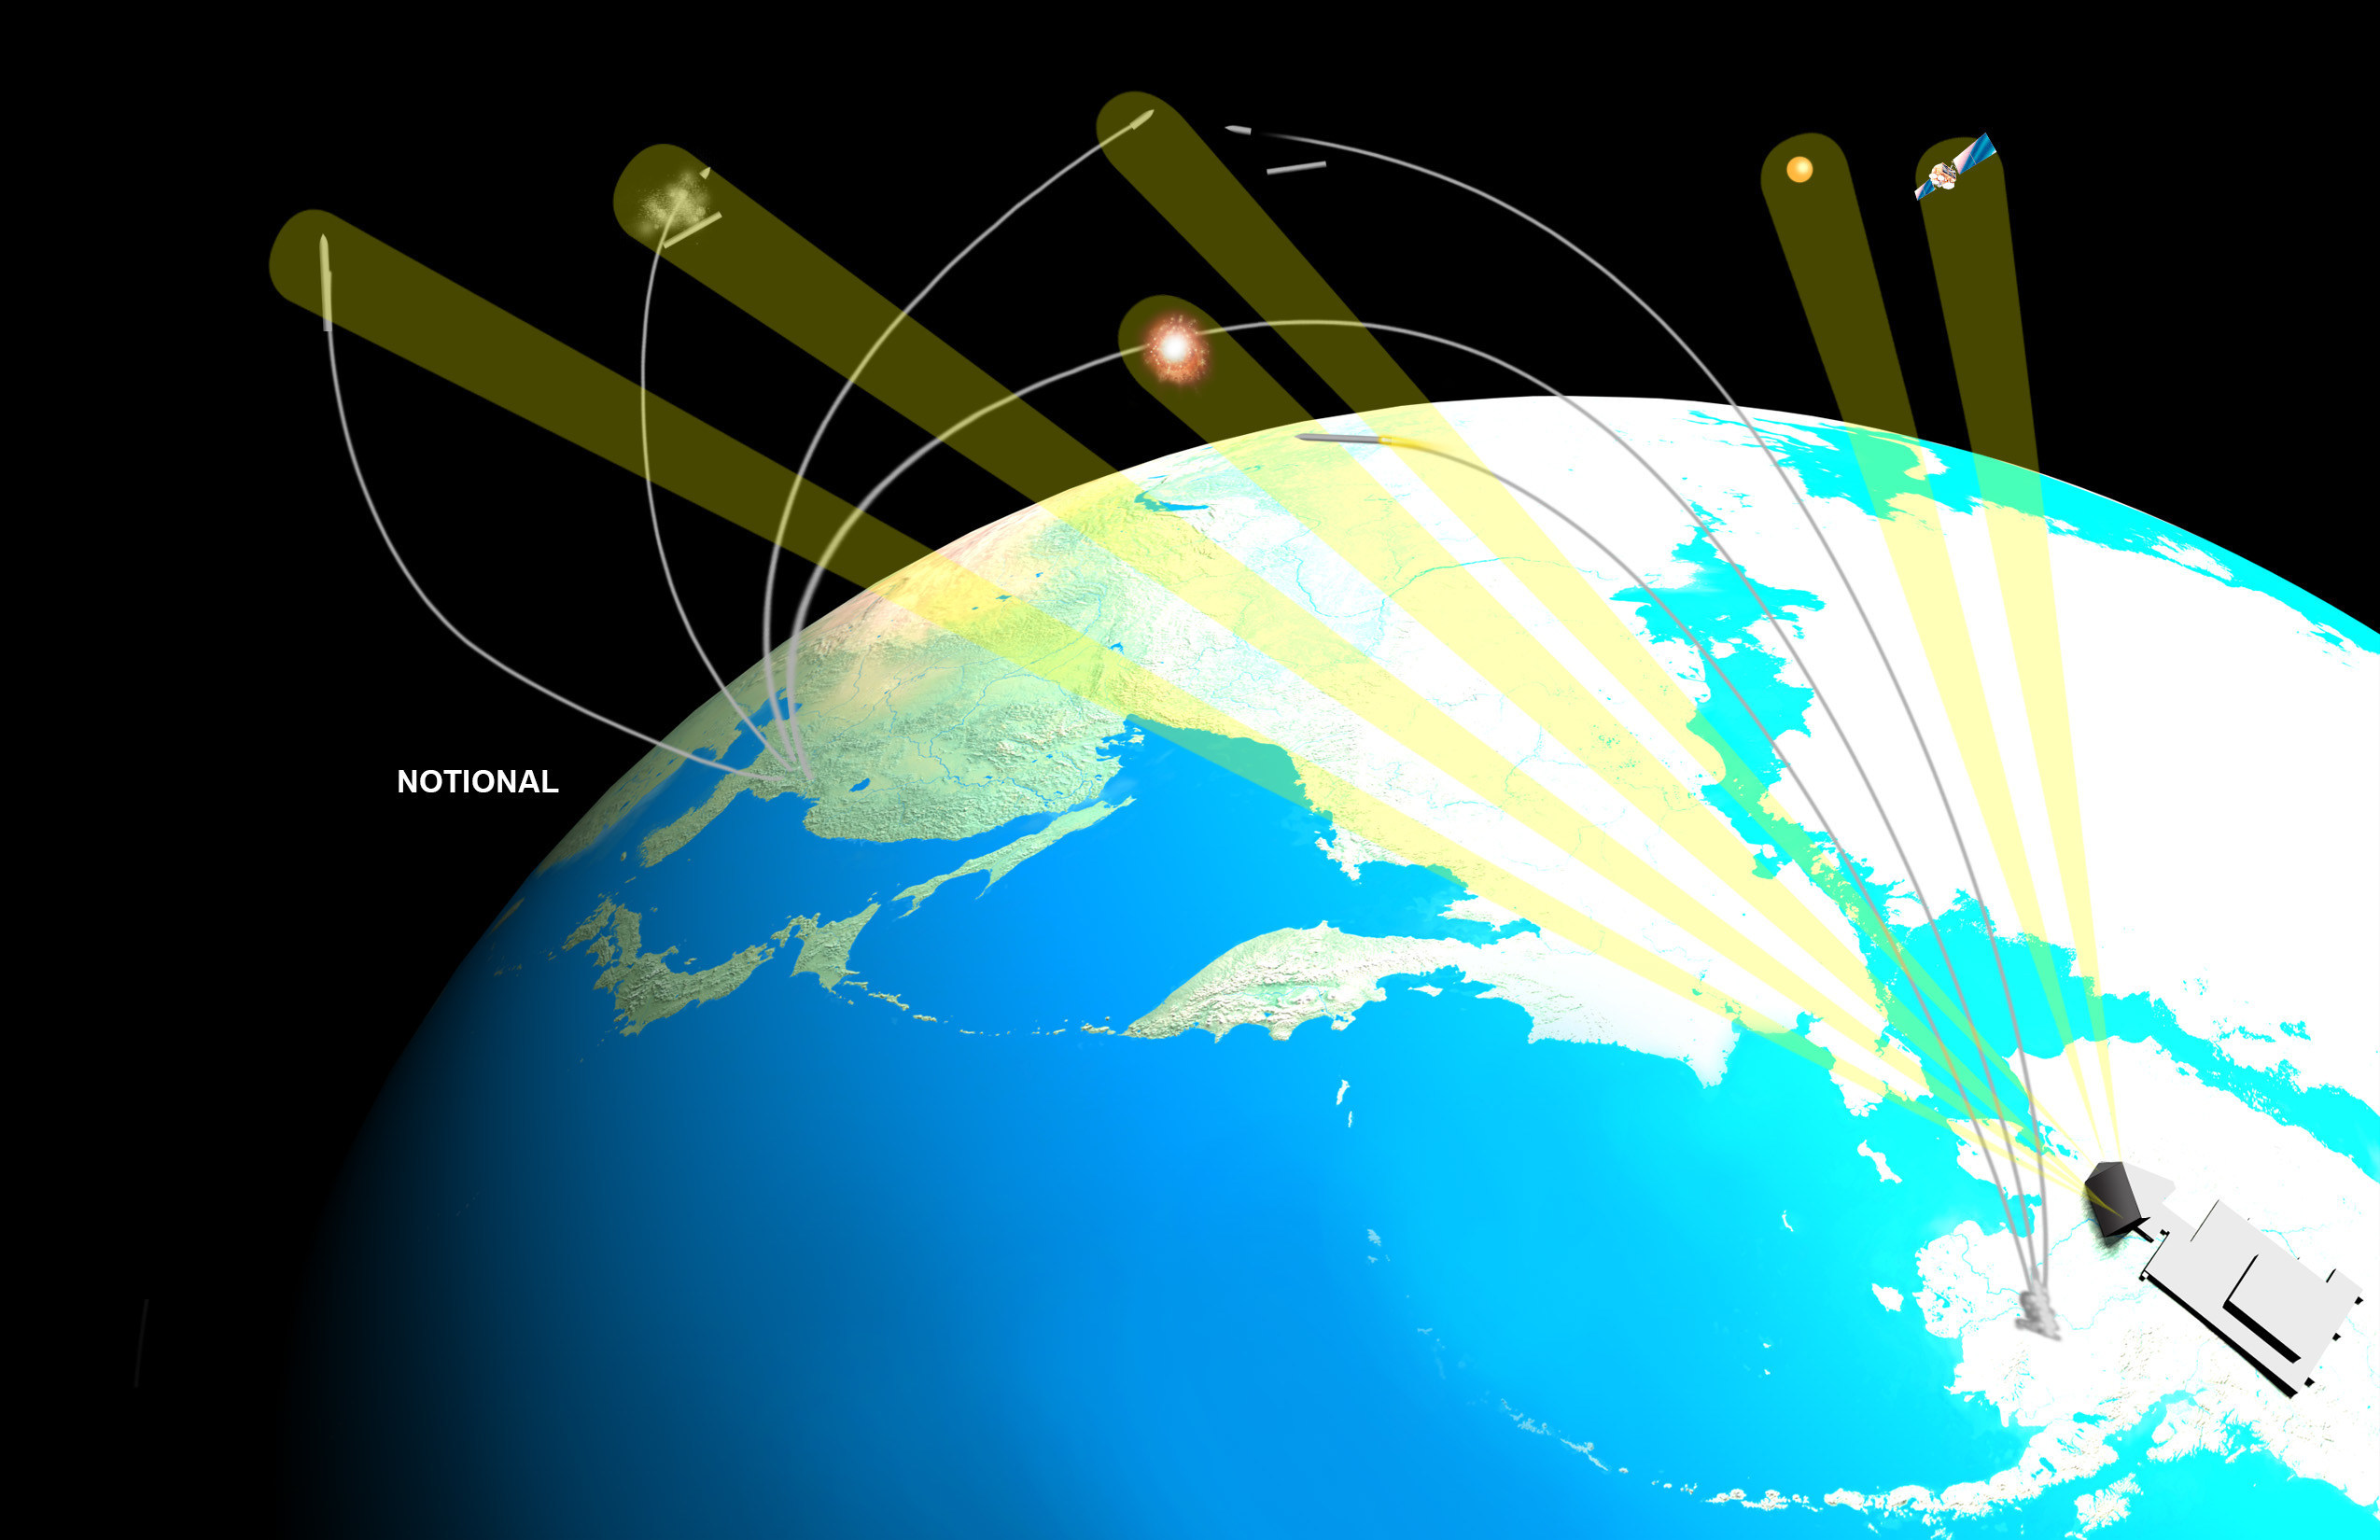 The Long Range Discrimination Radar (LRDR) is a high-powered S-Band radar incorporating solid-state gallium nitride (GaN) components capable of discriminating threats at extreme distances. (Lockheed Martin)